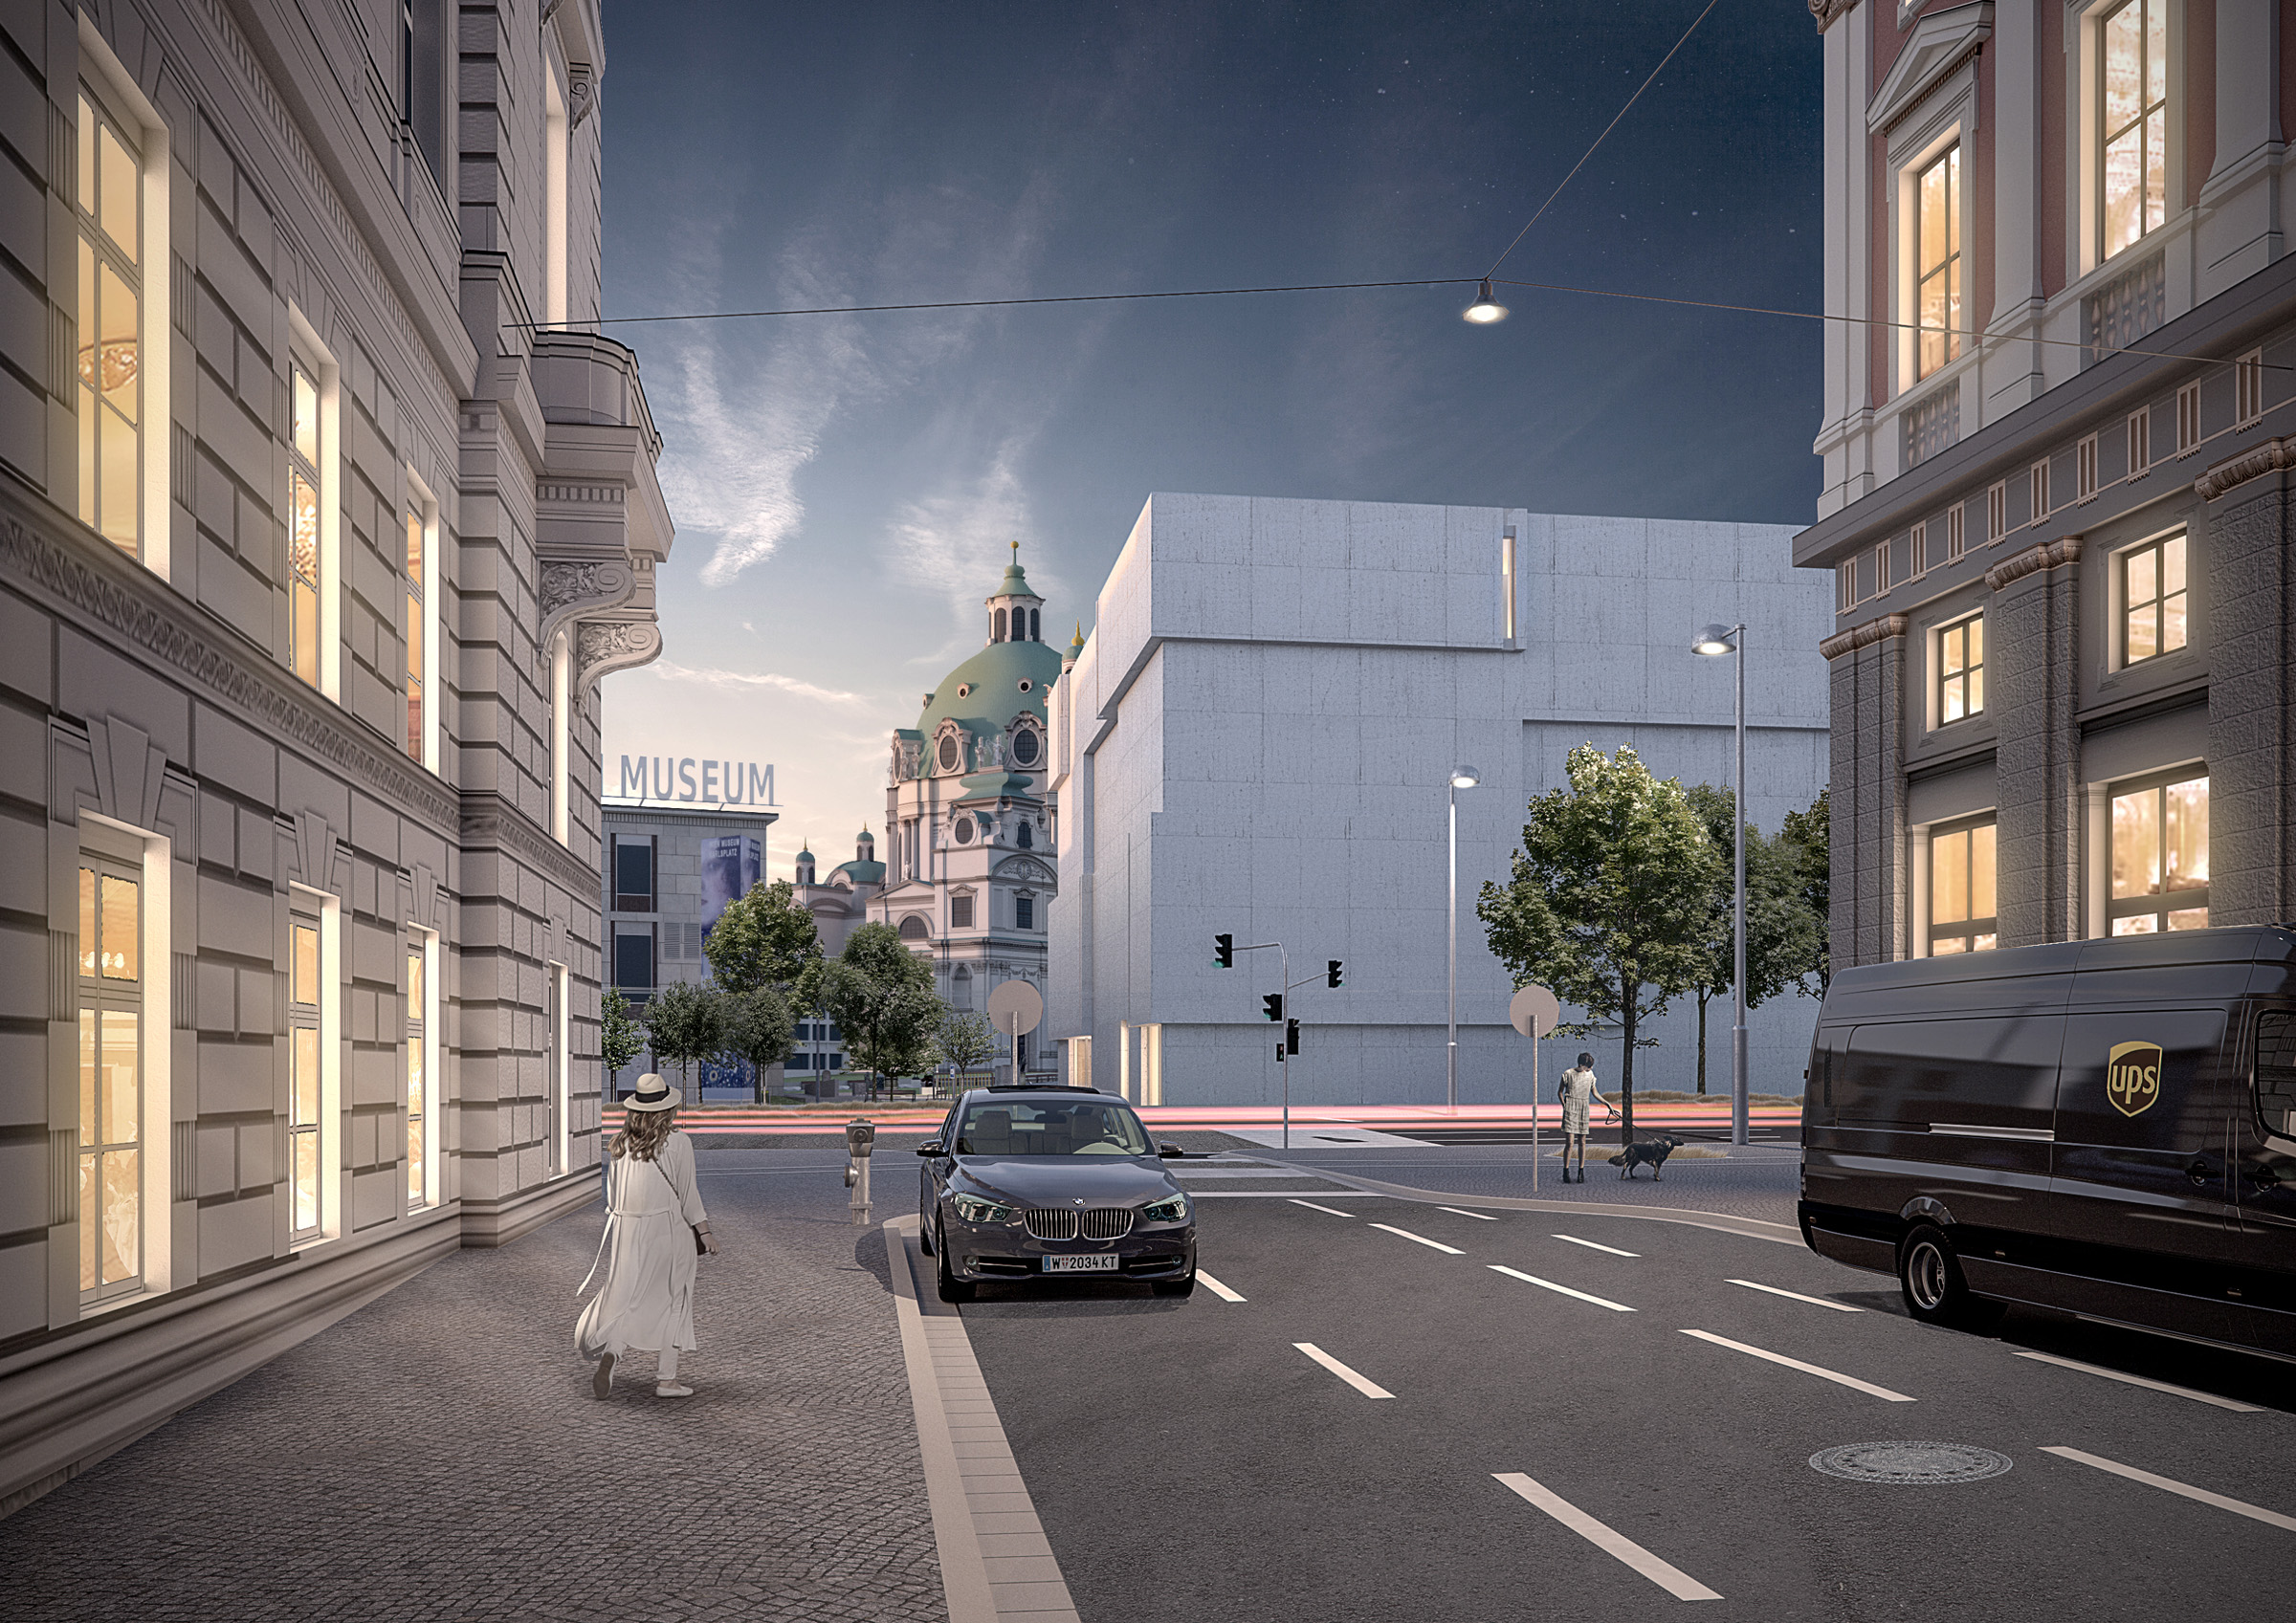 Architectural Visualization for a competition for the Wien Museum by Baumschlager Eberle in Vienna, Austria.